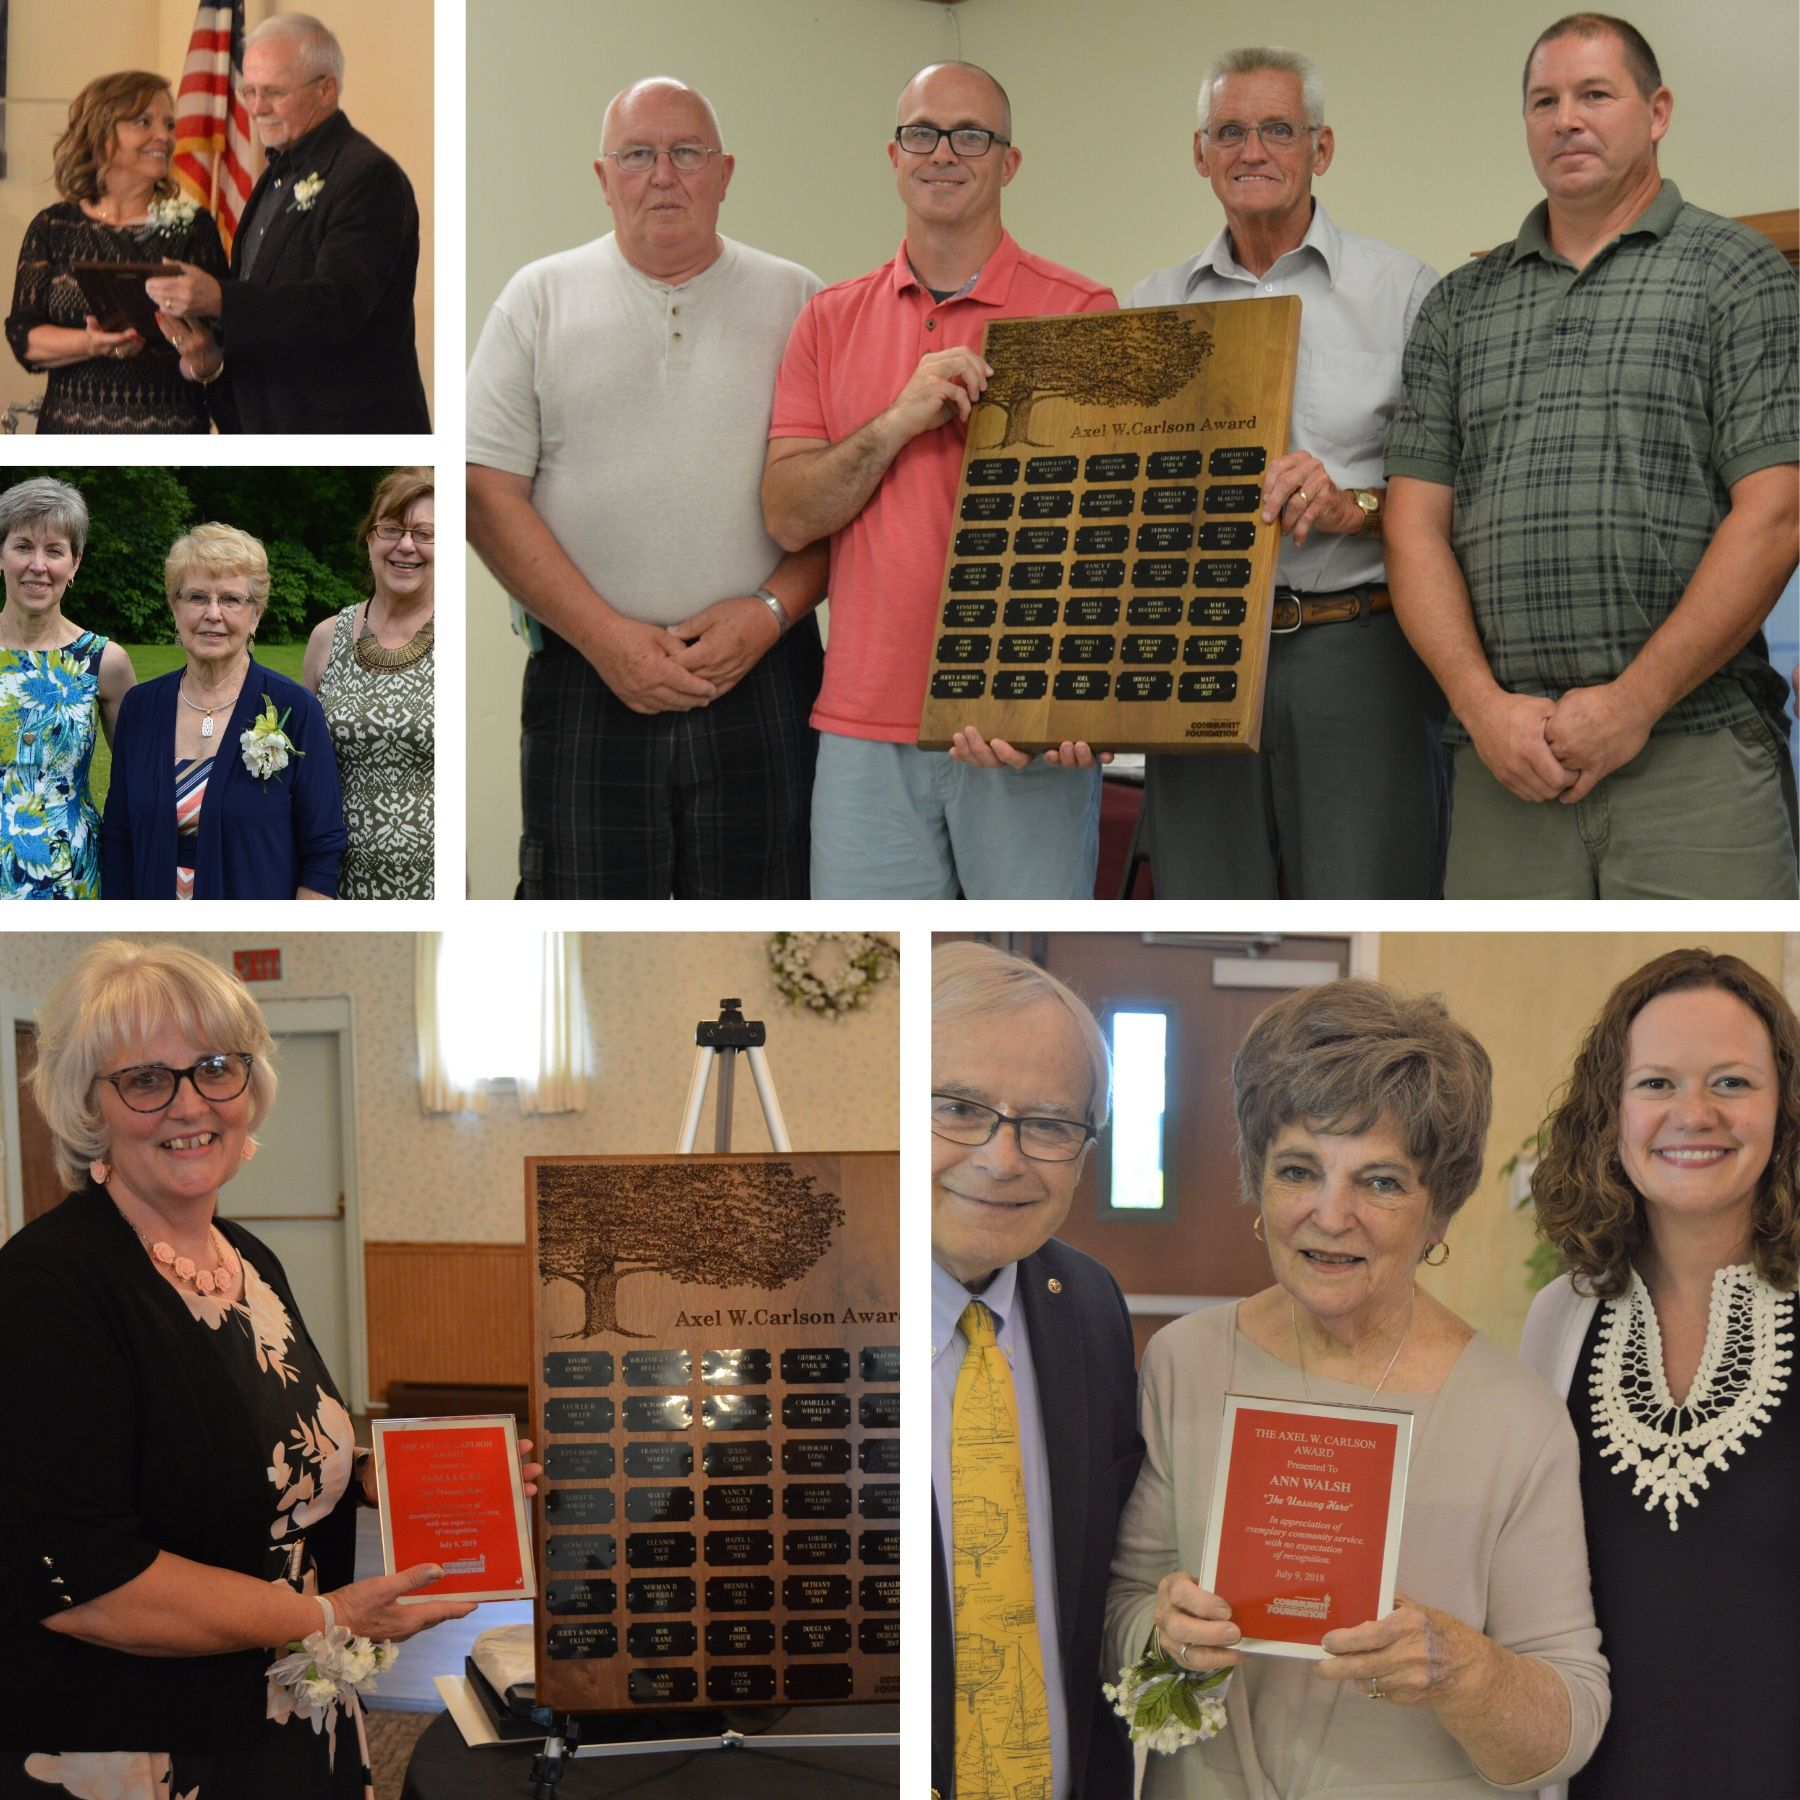 Past Unsung Hero Award recipients include, clockwise from left, Jerry and Norma Eklund; Bob Crane, Joel Fisher, Doug Neal and Matt Oehlbeck; Ann Walsh; Pam Lucas; and Jeri Yauchzy.